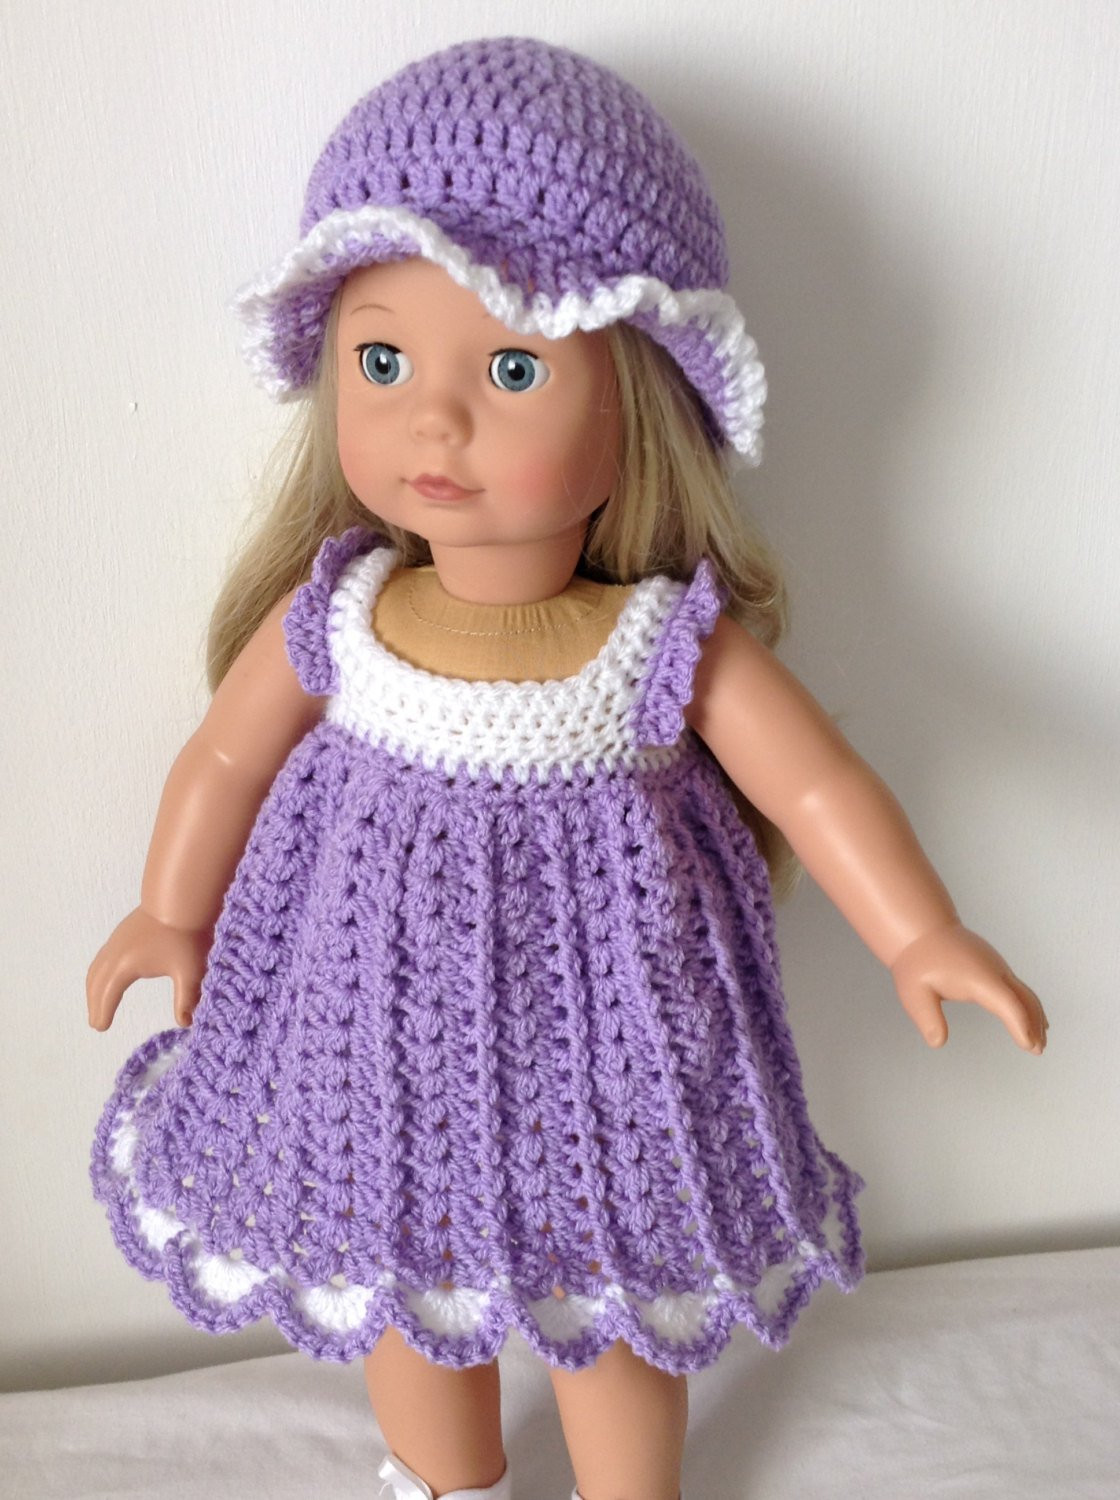 Free Crochet Patterns for American Girl Doll Lovely Pdf Crochet Pattern for 18 Inch Doll American Girl Doll or Of Contemporary 40 Pictures Free Crochet Patterns for American Girl Doll